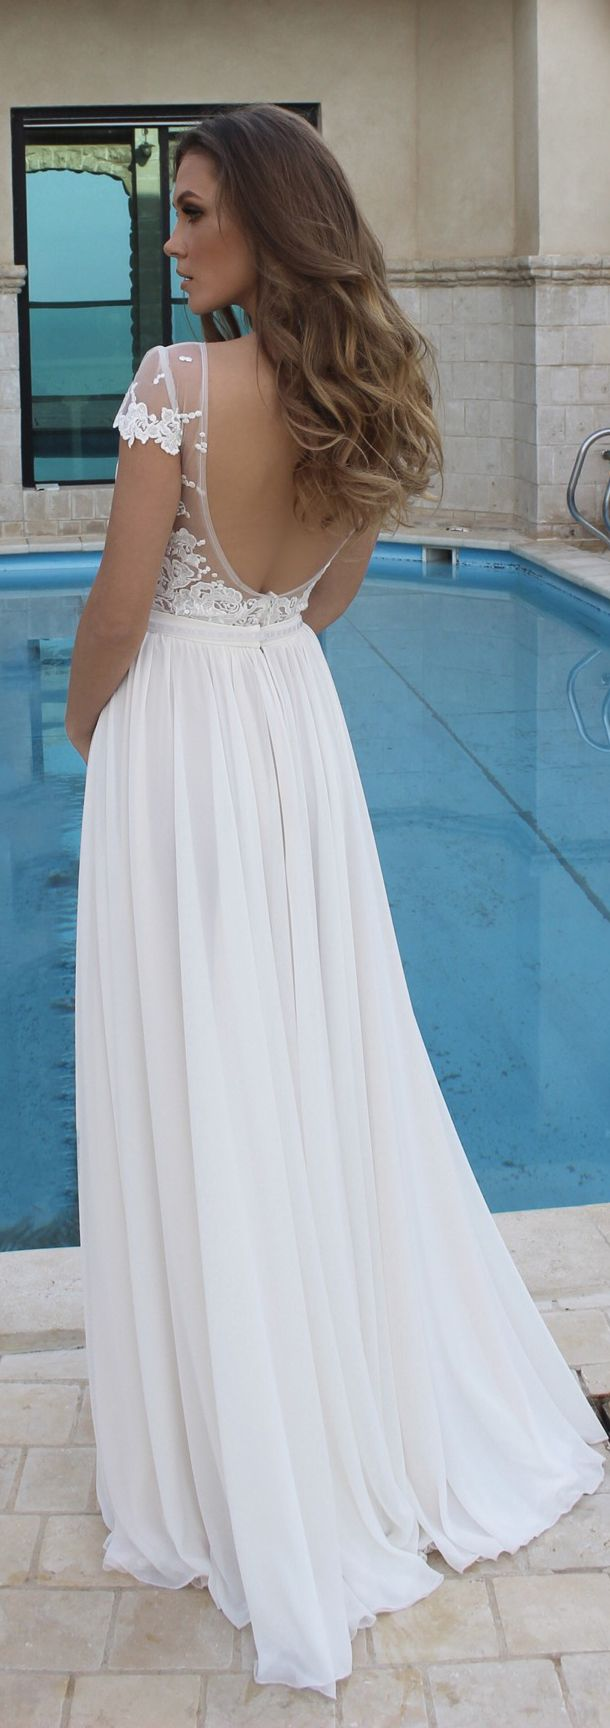 191 best Berta images on Pinterest | Bridal gowns, Homecoming ...